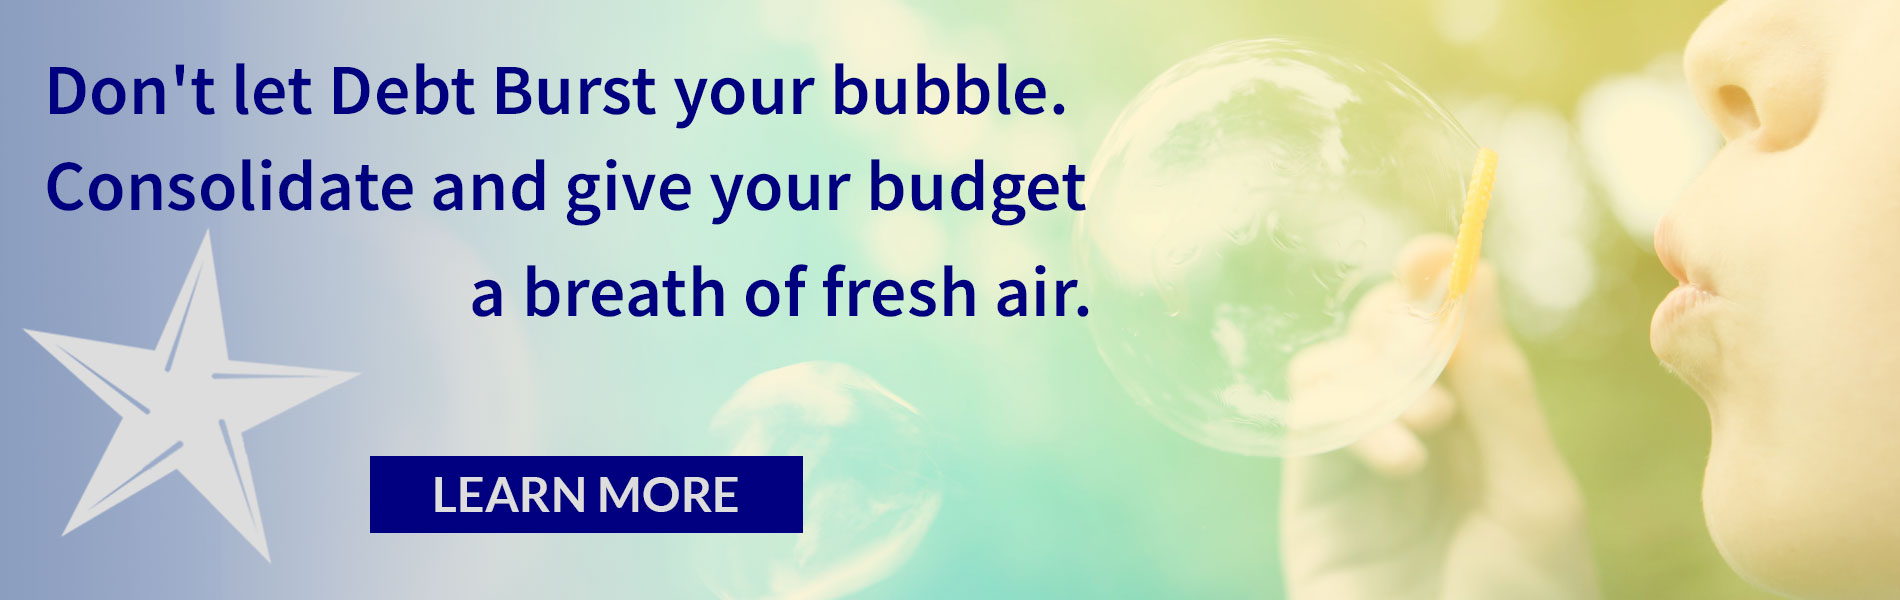 Don't let debt burst you bubble. Consolidate and give your budget a breath of fresh air. Learn More.